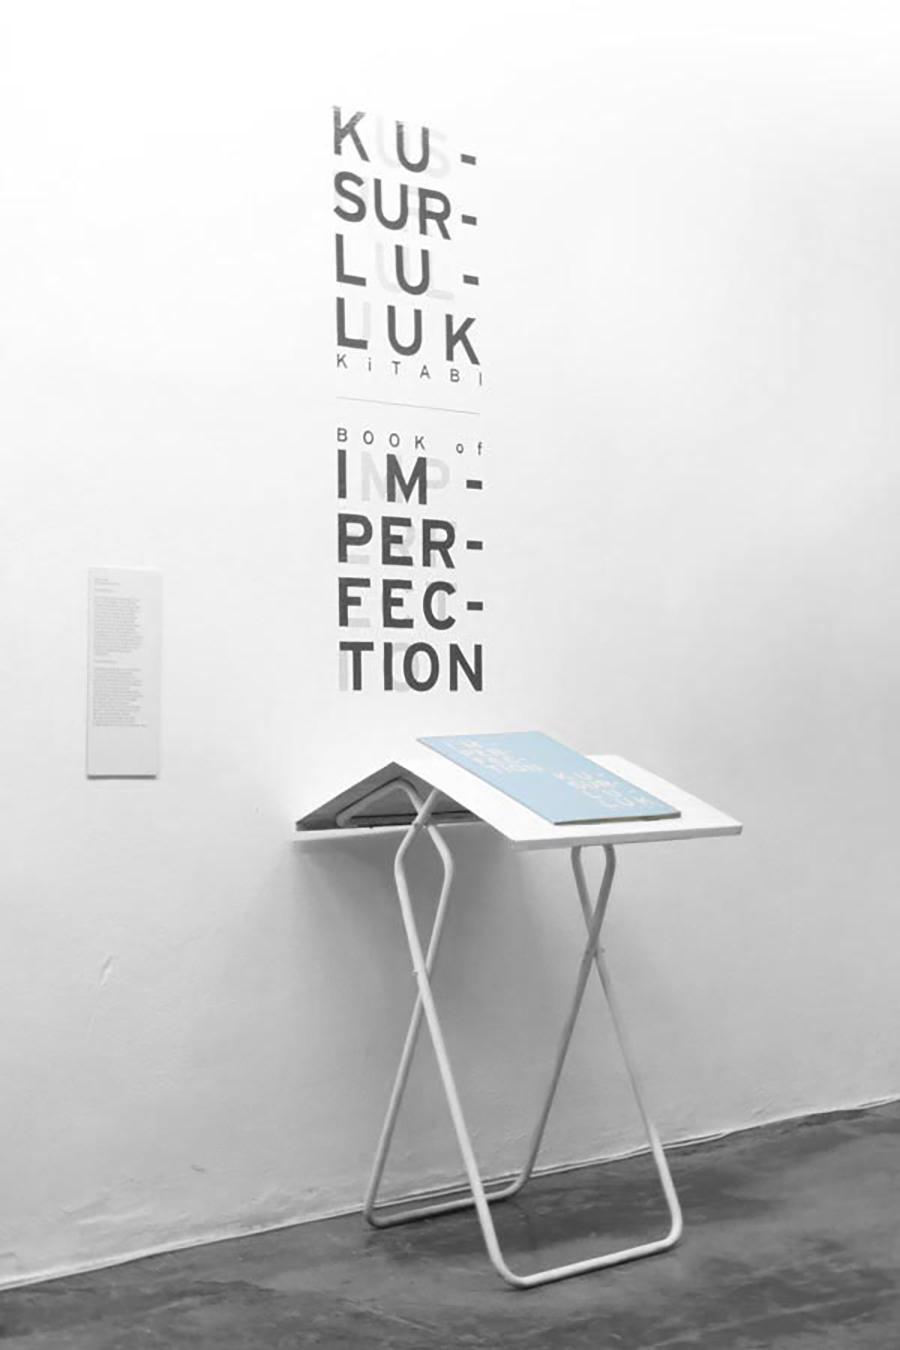 Kusurluluk Kitabı - Book of Imperfection